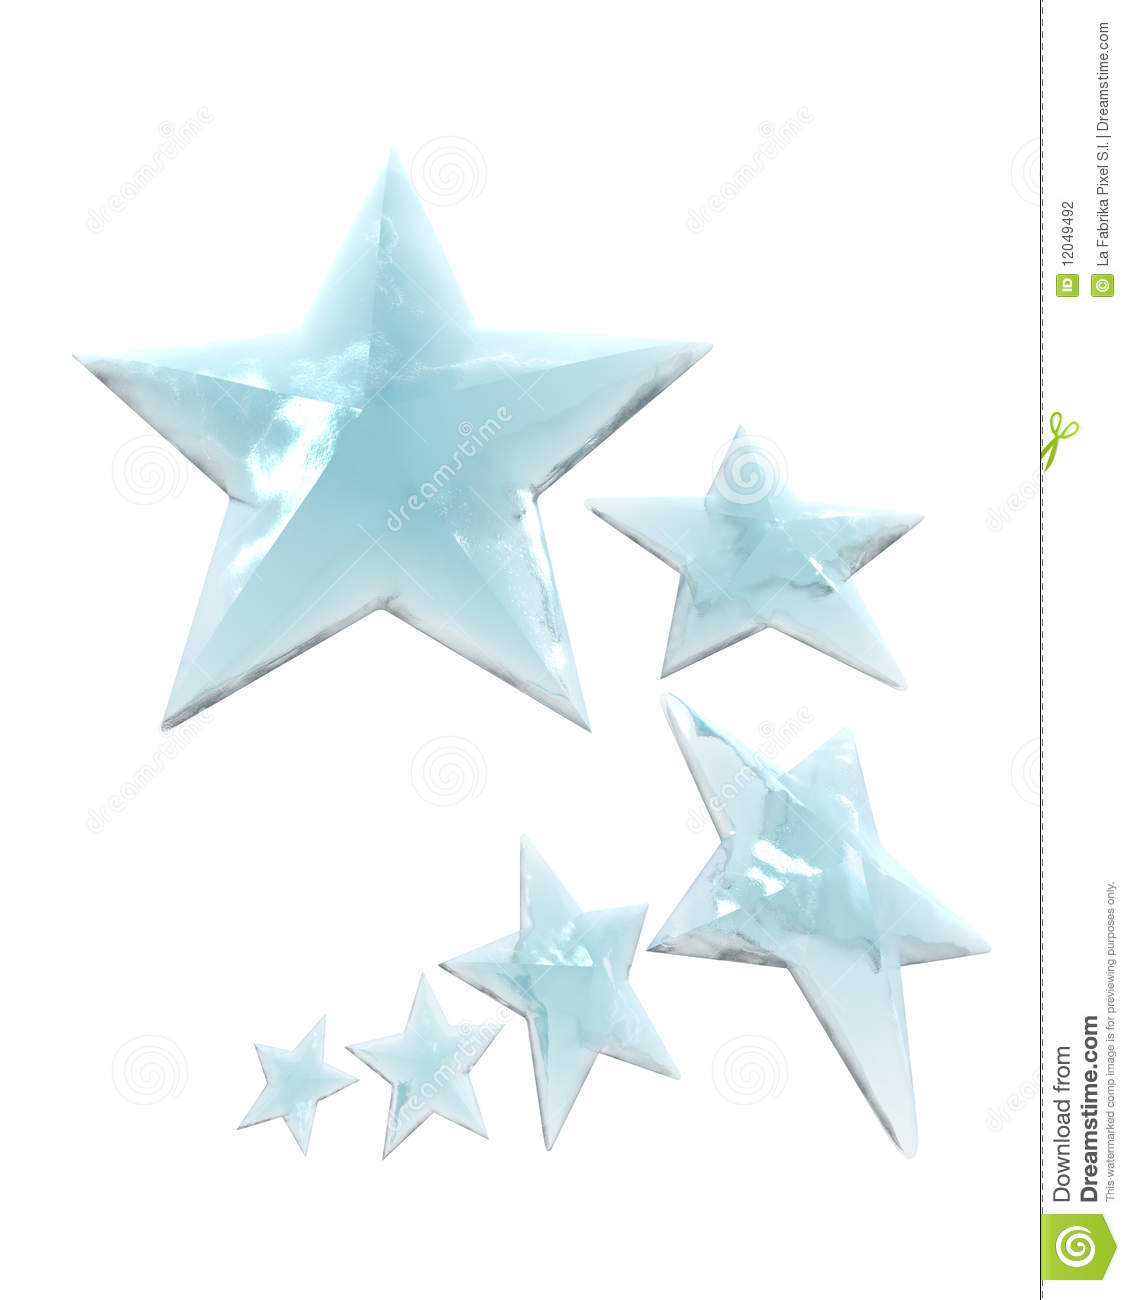 Group of six iced stars evolving in a white background